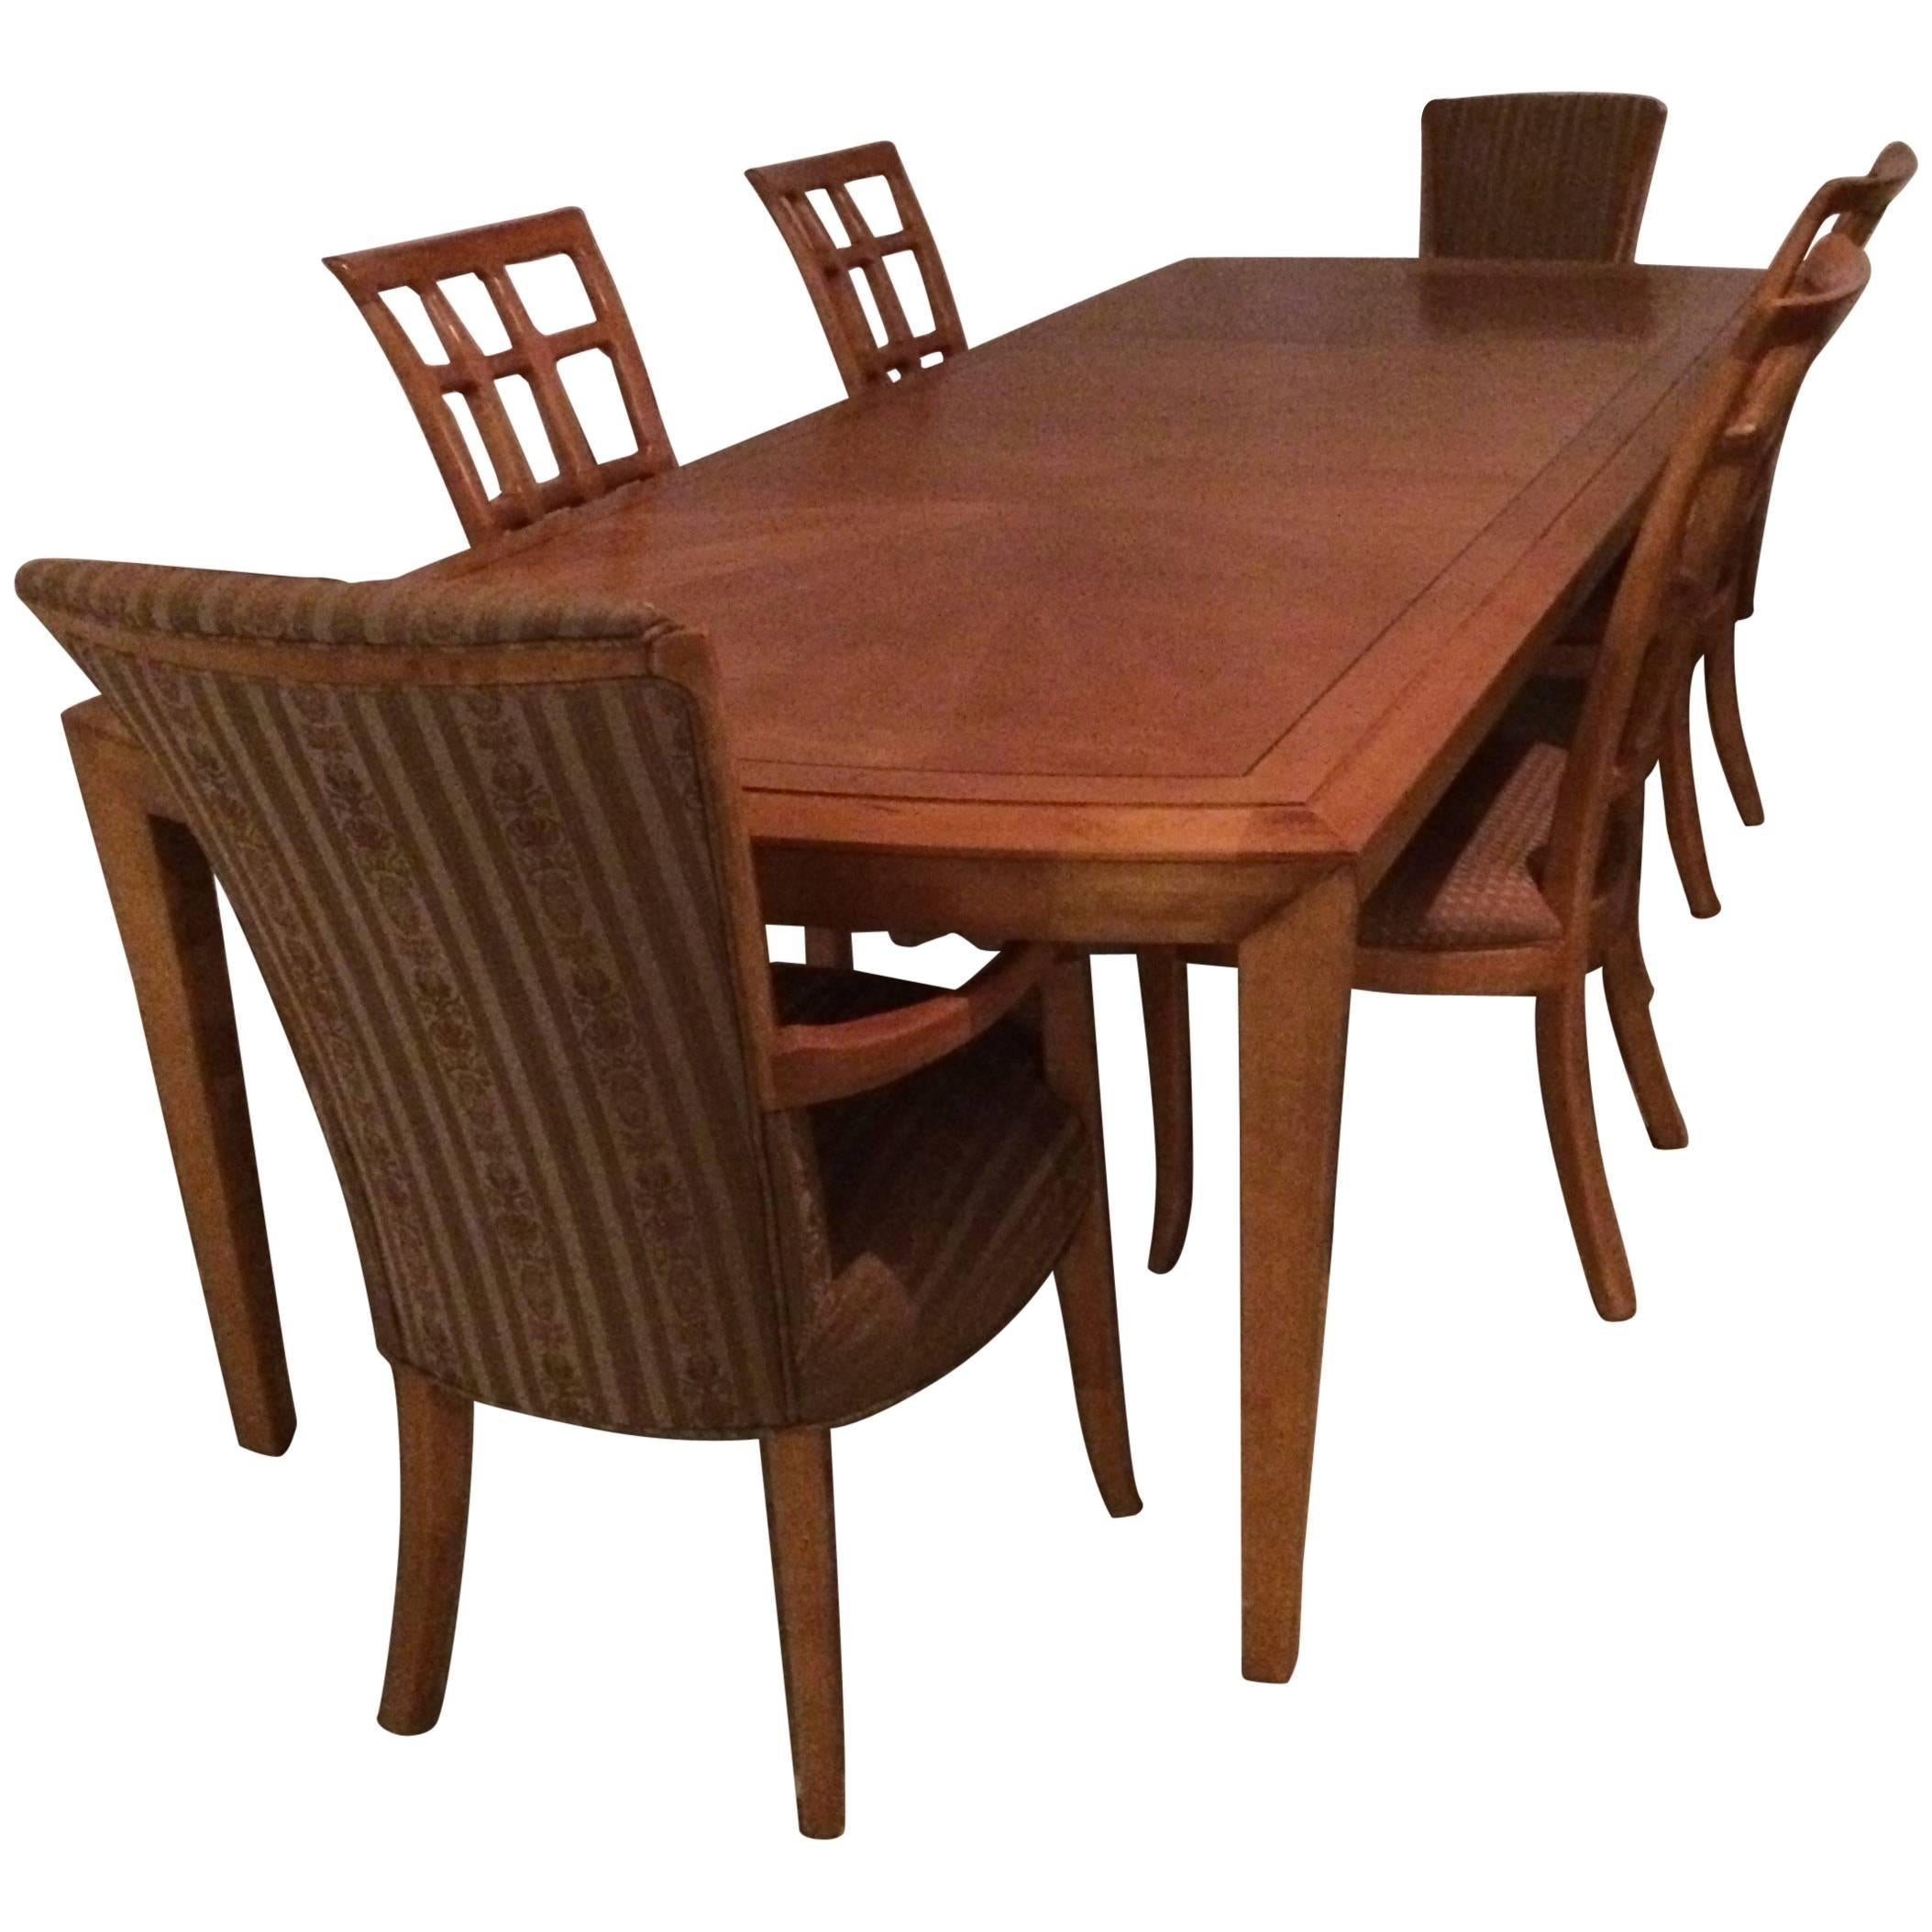 Charmant Magnificent Very Long Maple Dining Table And Six Matching Chairs By Henredon